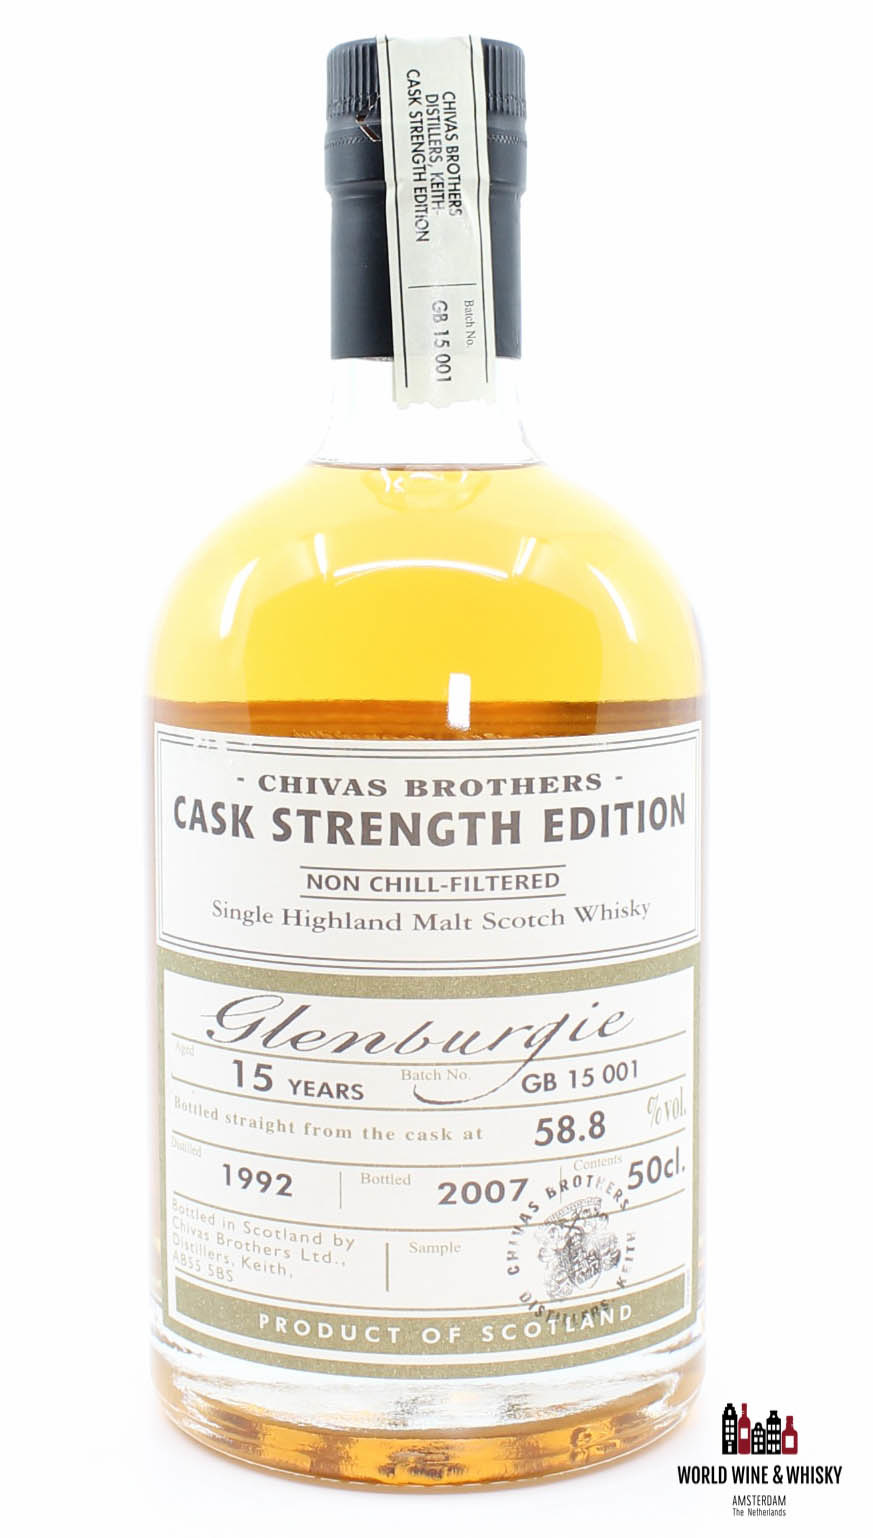 Glenburgie Glenburgie 15 Years Old 1992 2007 Batch GB 15 001 - Chivas Brothers - Cask Strength Edition 58.8%